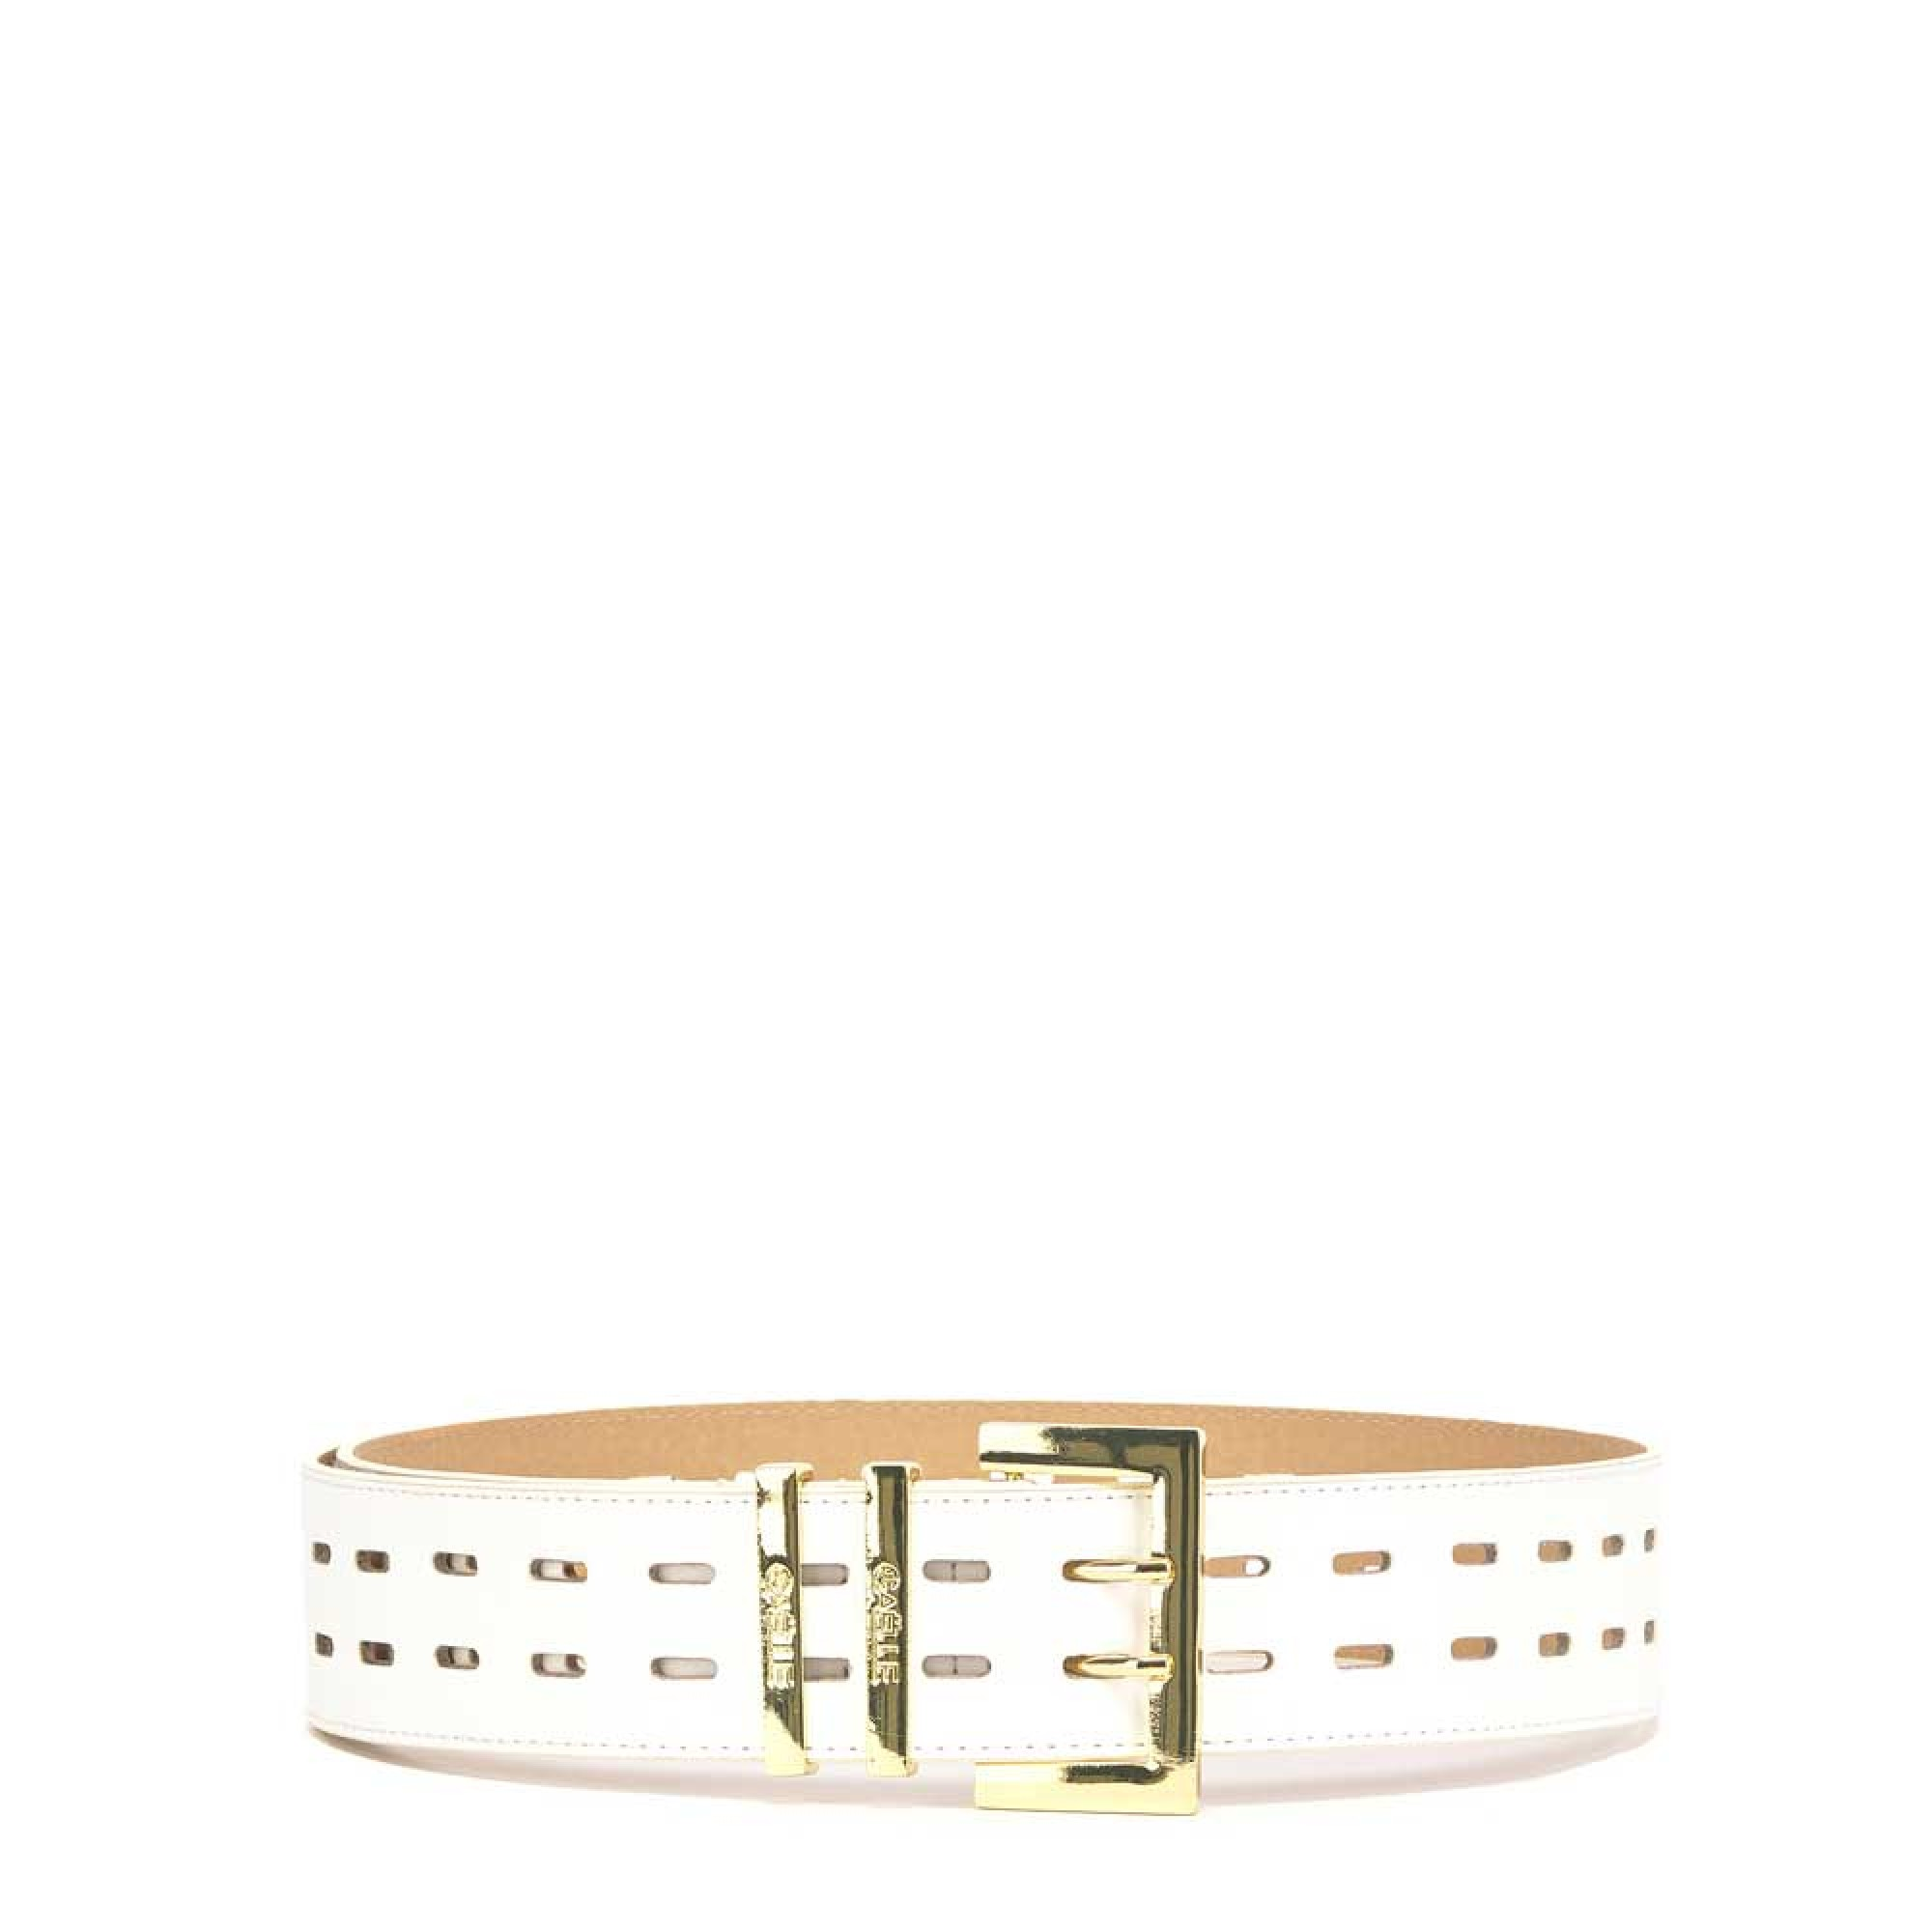 BELT - GBDA1666 - GAELLE PARIS